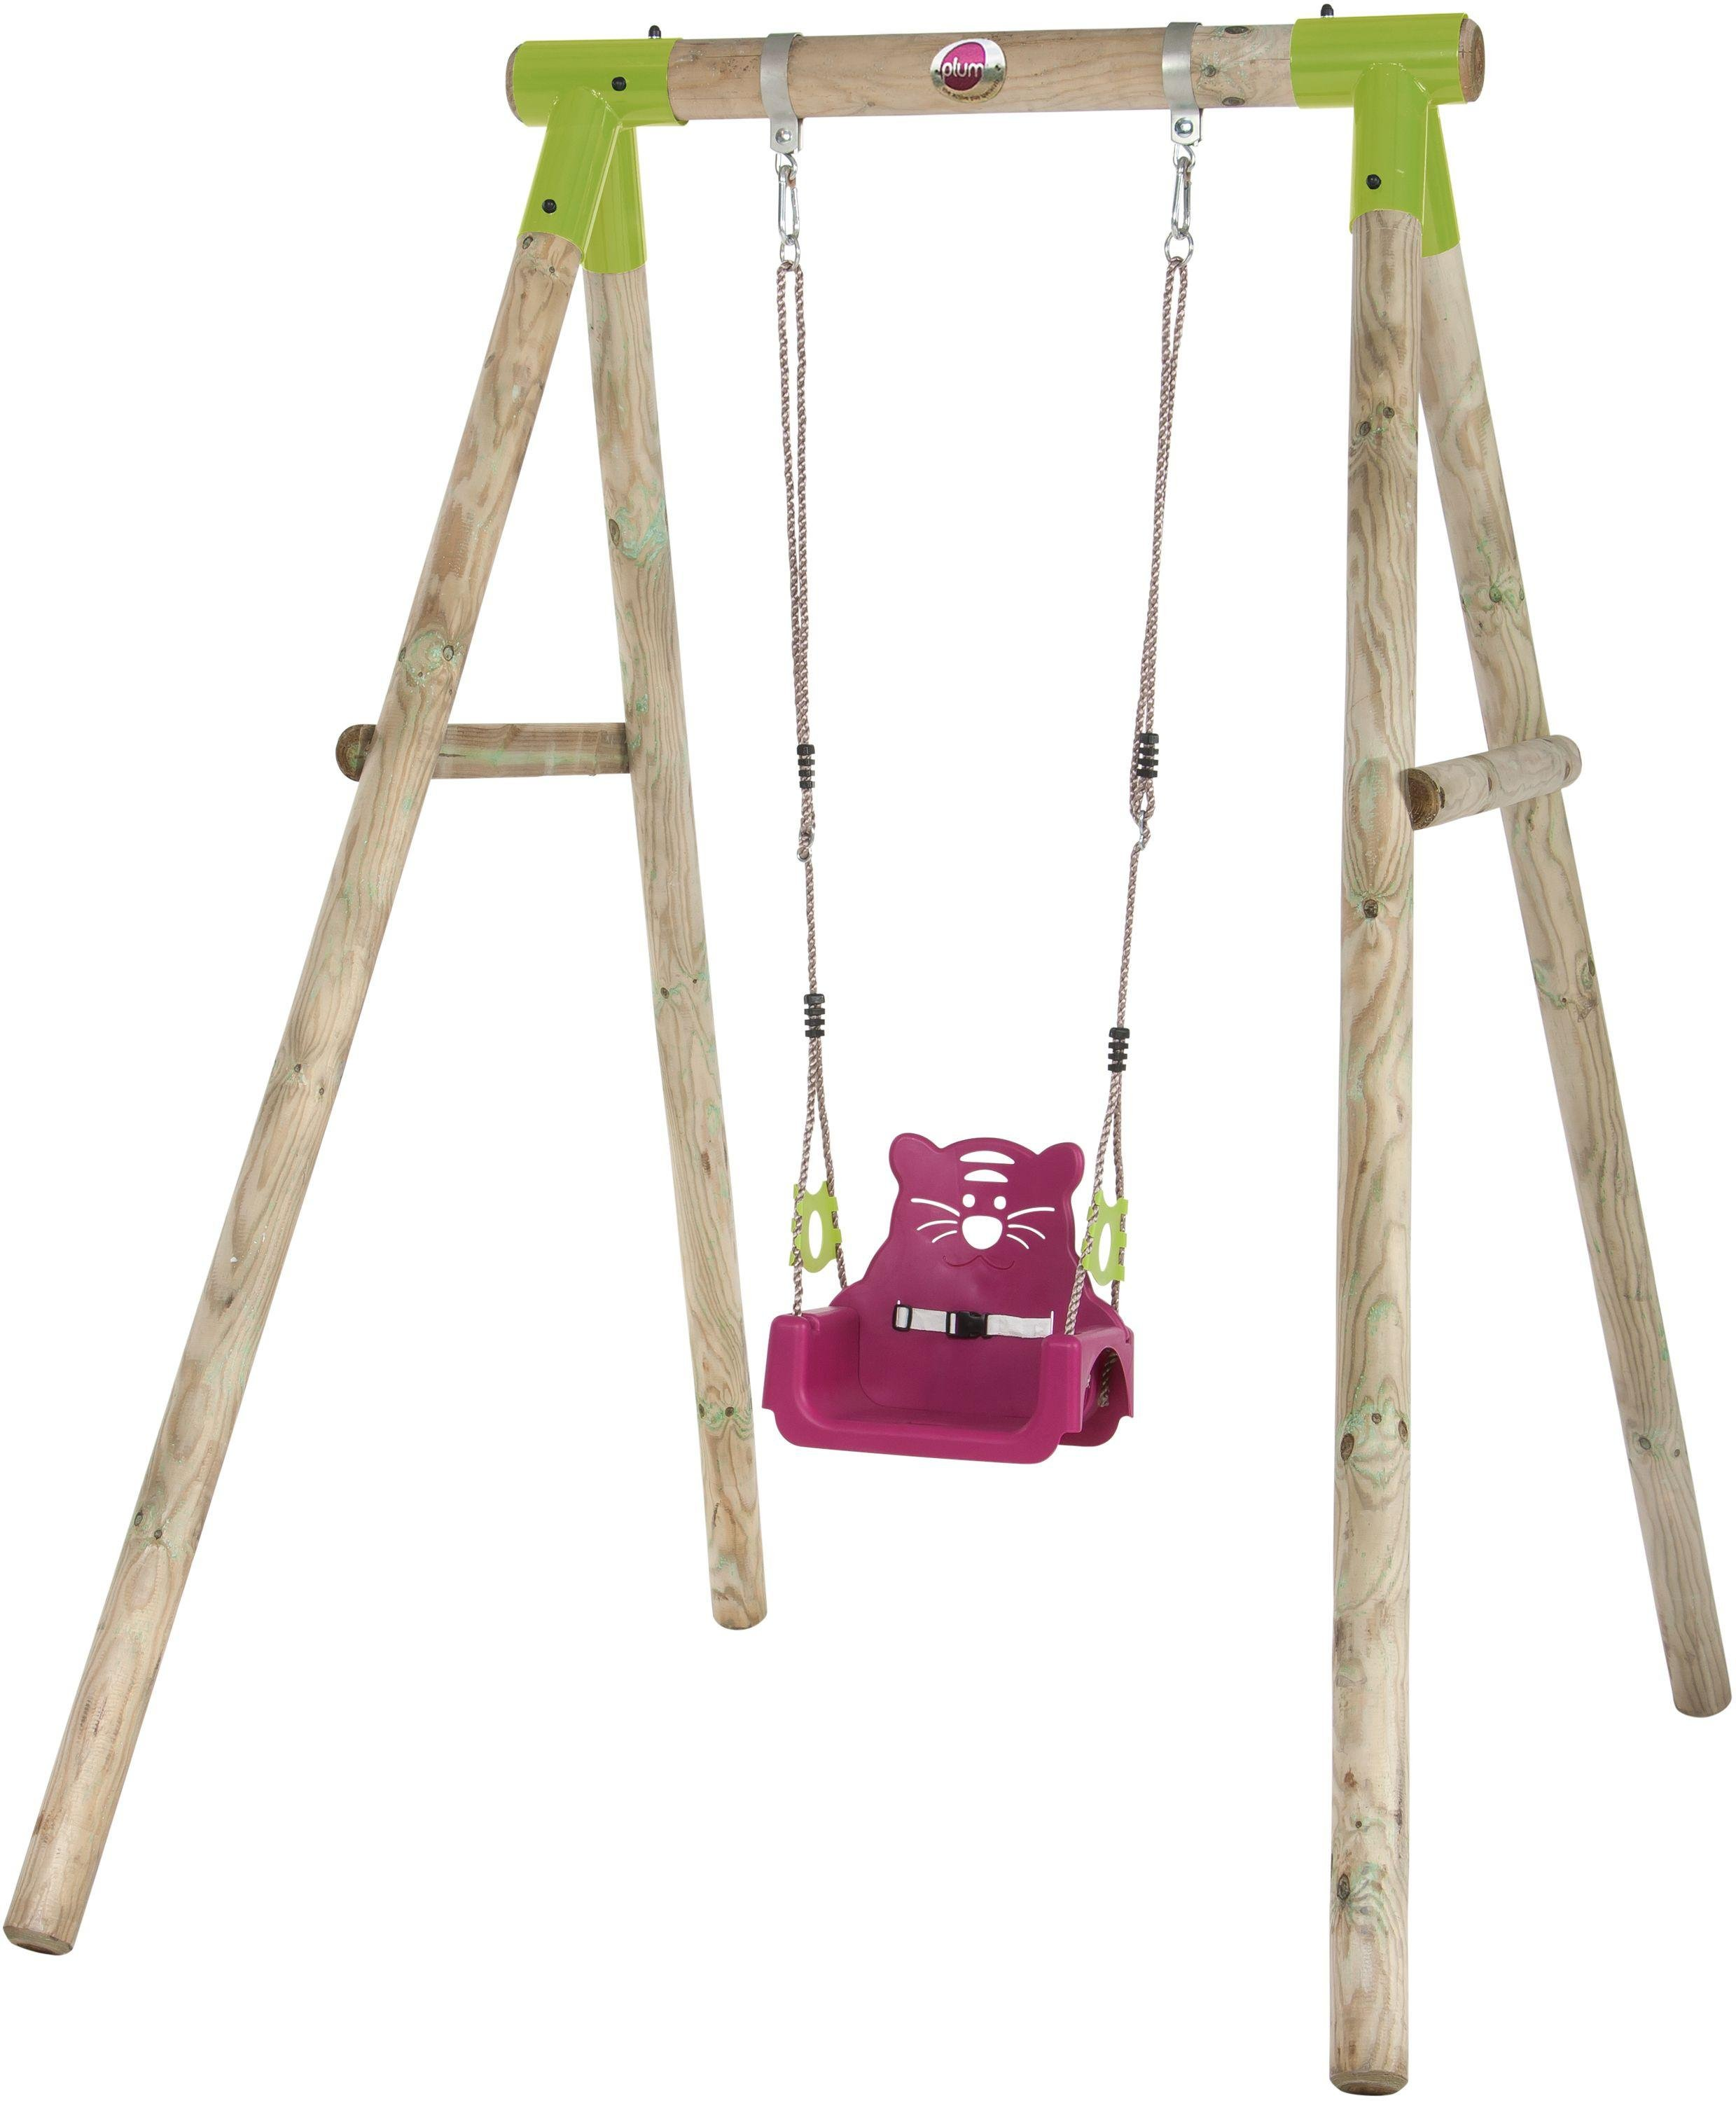 Plum Quoll Wooden Pole Swing Set.